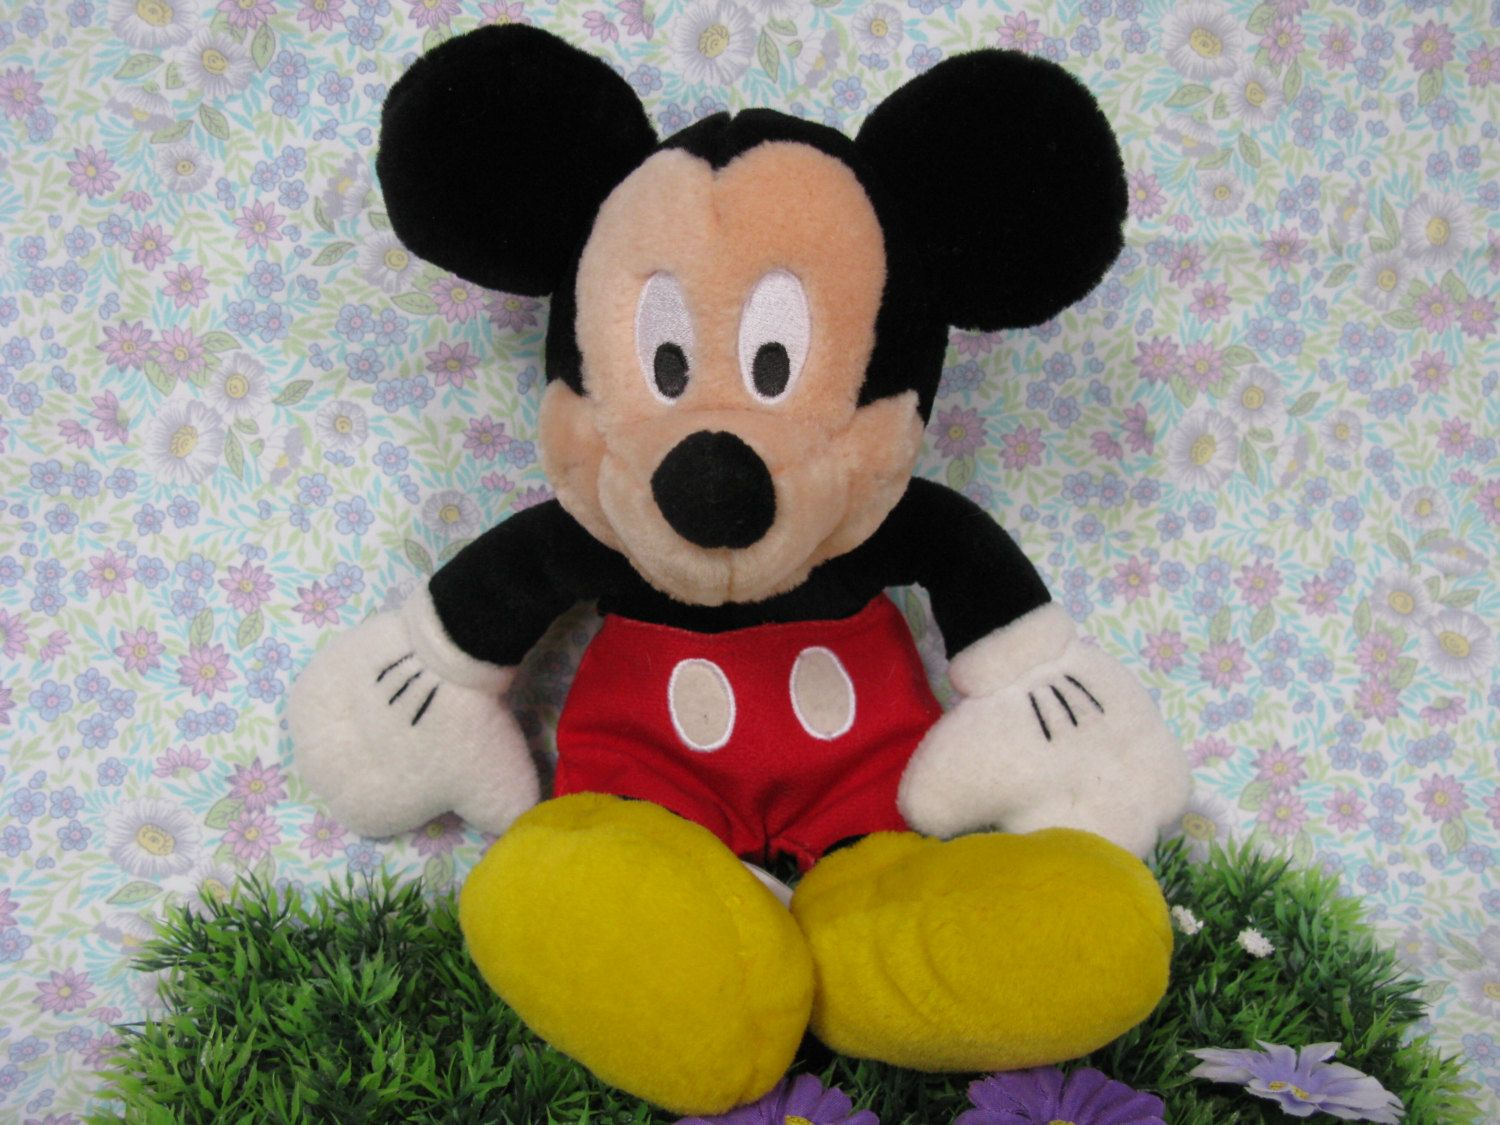 Mickey Mouse Toy - Mickey Plush Toy - Mickey Soft Toy - Mickey Mouse - Vintage Mickey - Vintage Disney - Mickey Plushie - Mickey Bean Bag by MissieMooVintageRoom on Etsy